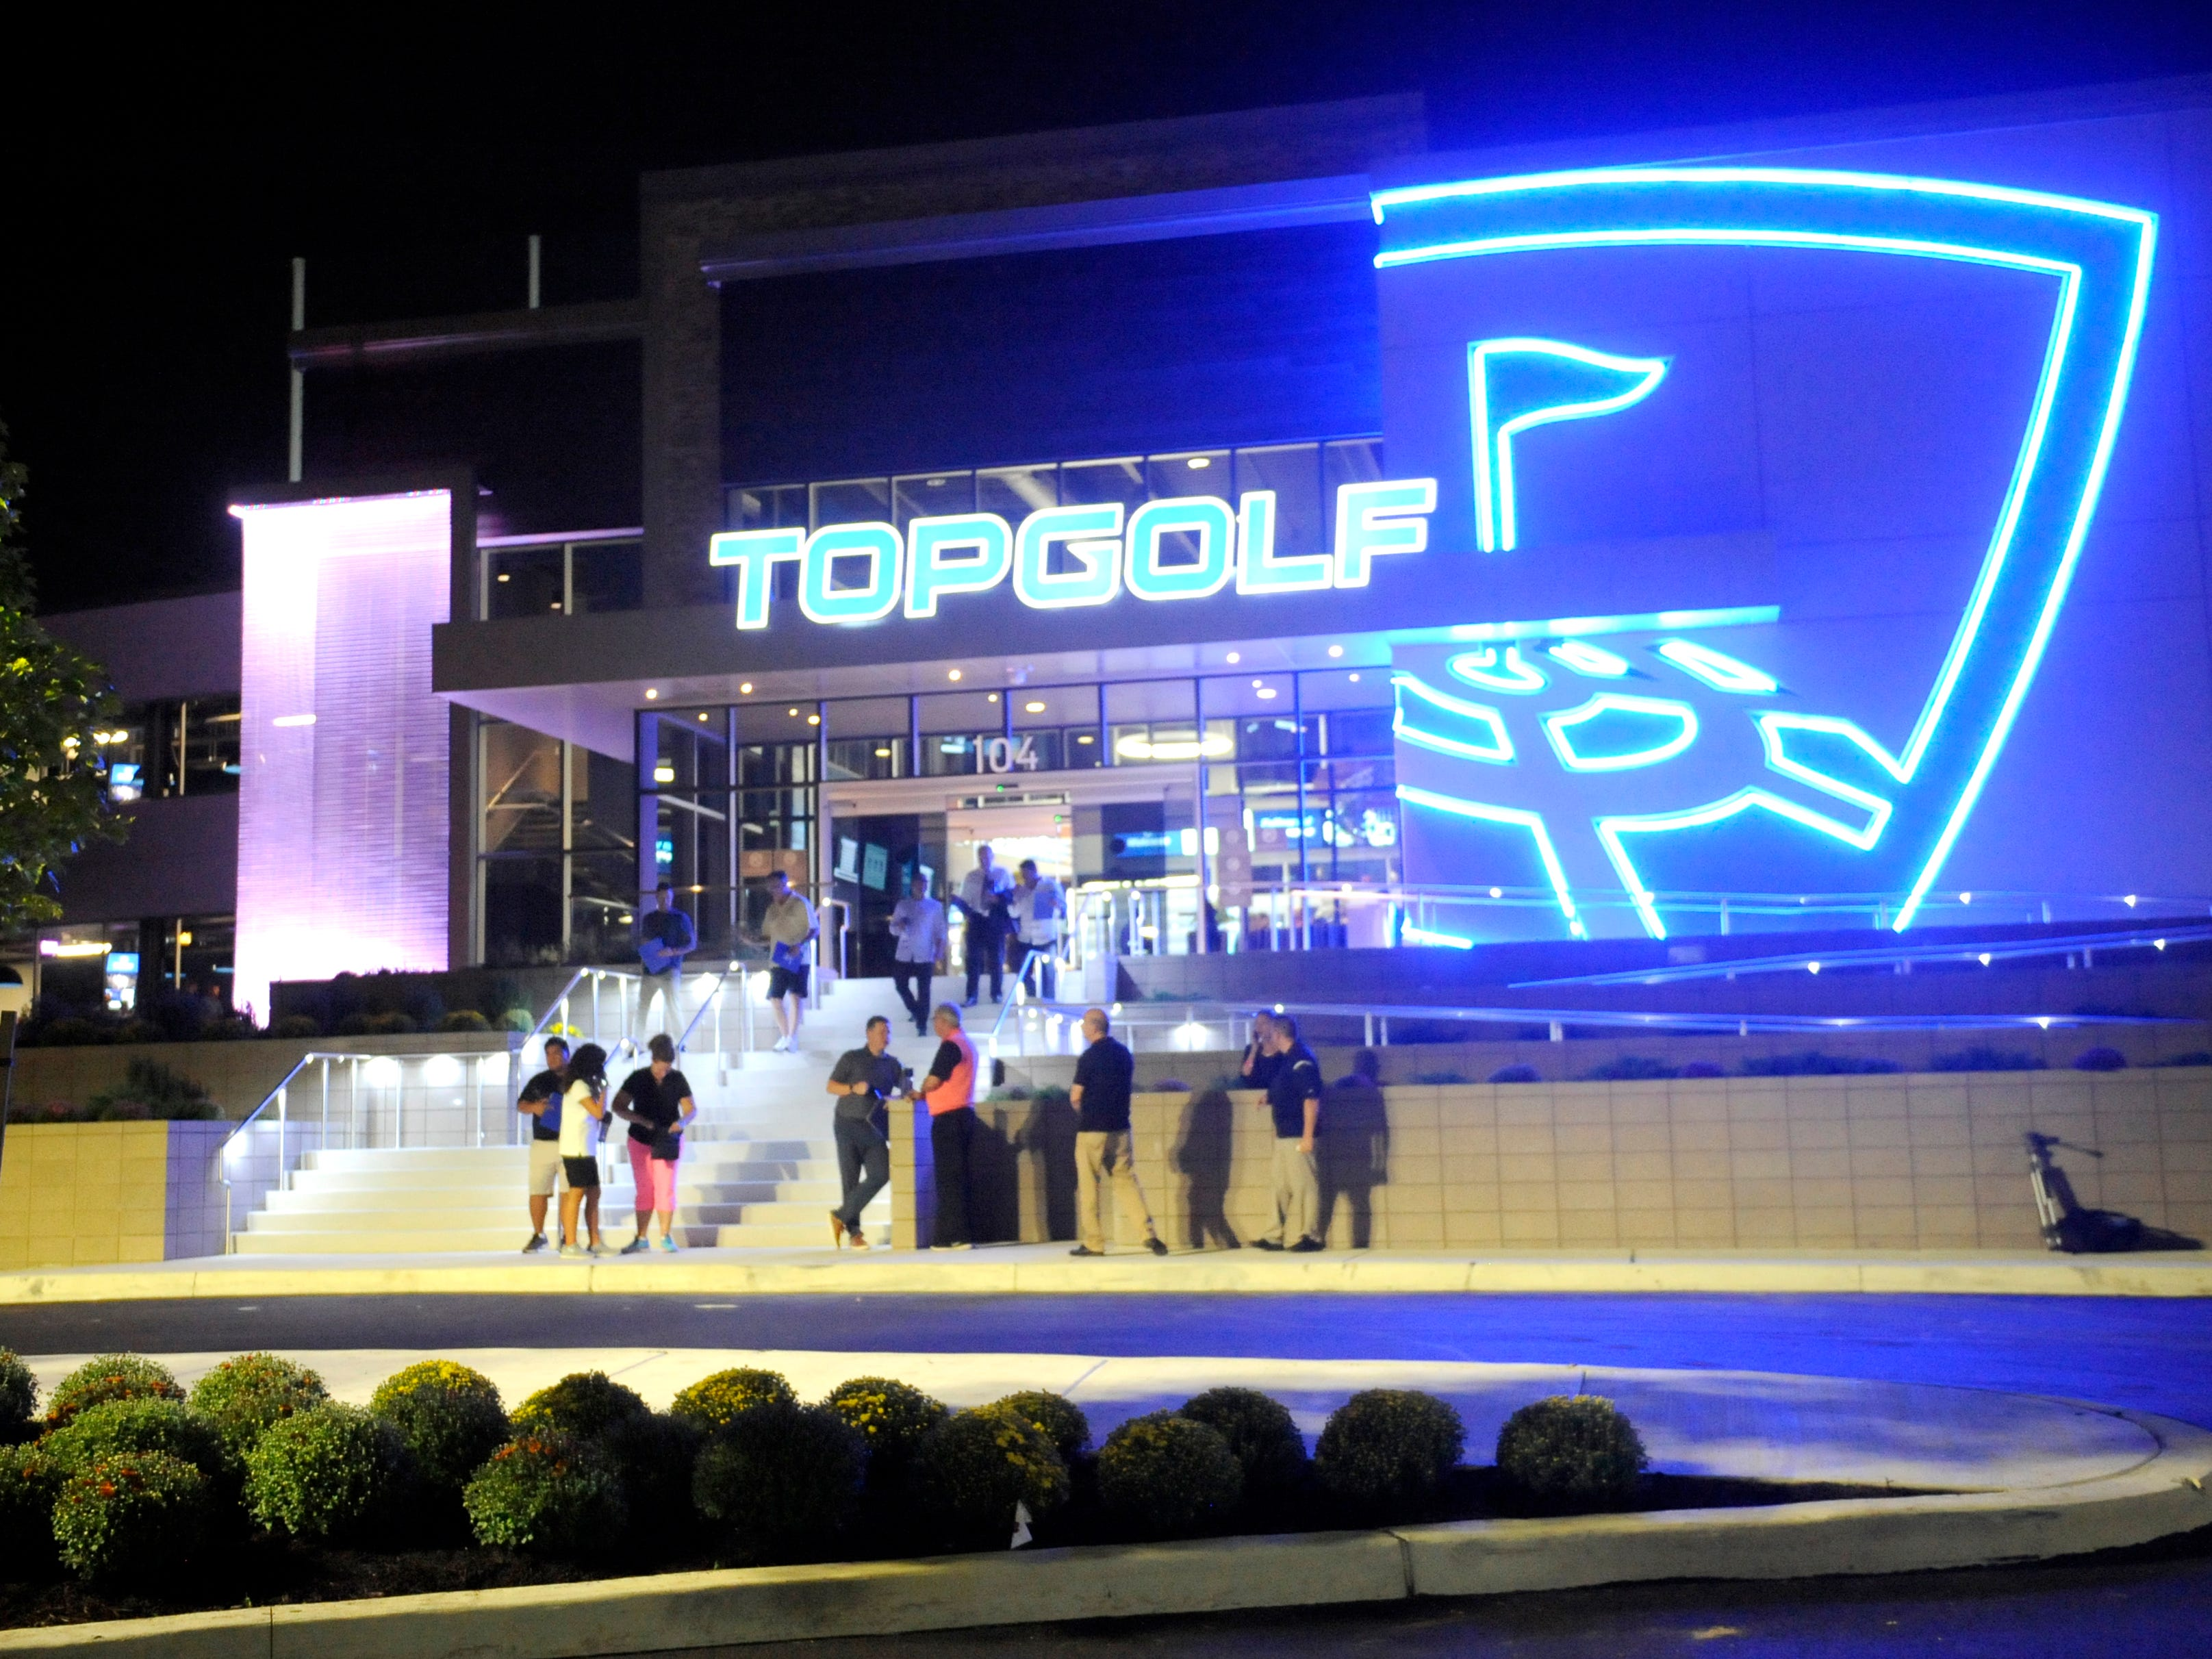 Take a look inside Topgolf Mount Laurel. South Jersey's newest golf entertainment center opened its doors for a special tour of the facility on Wednesday, September 26.